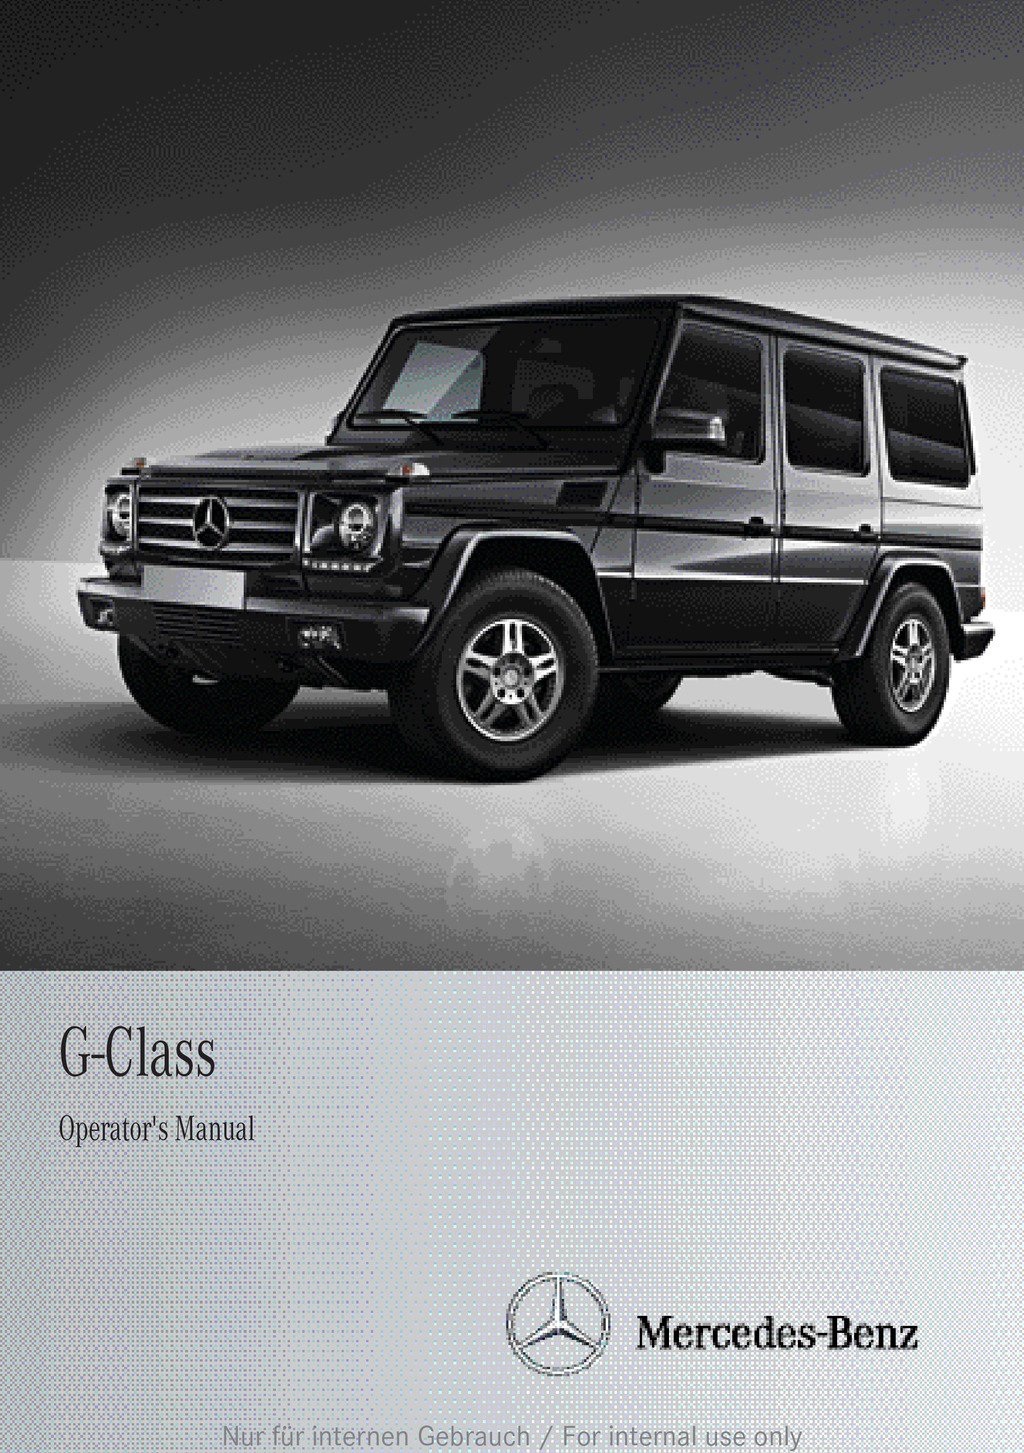 2013 Mercedes-Benz G Class owners manual